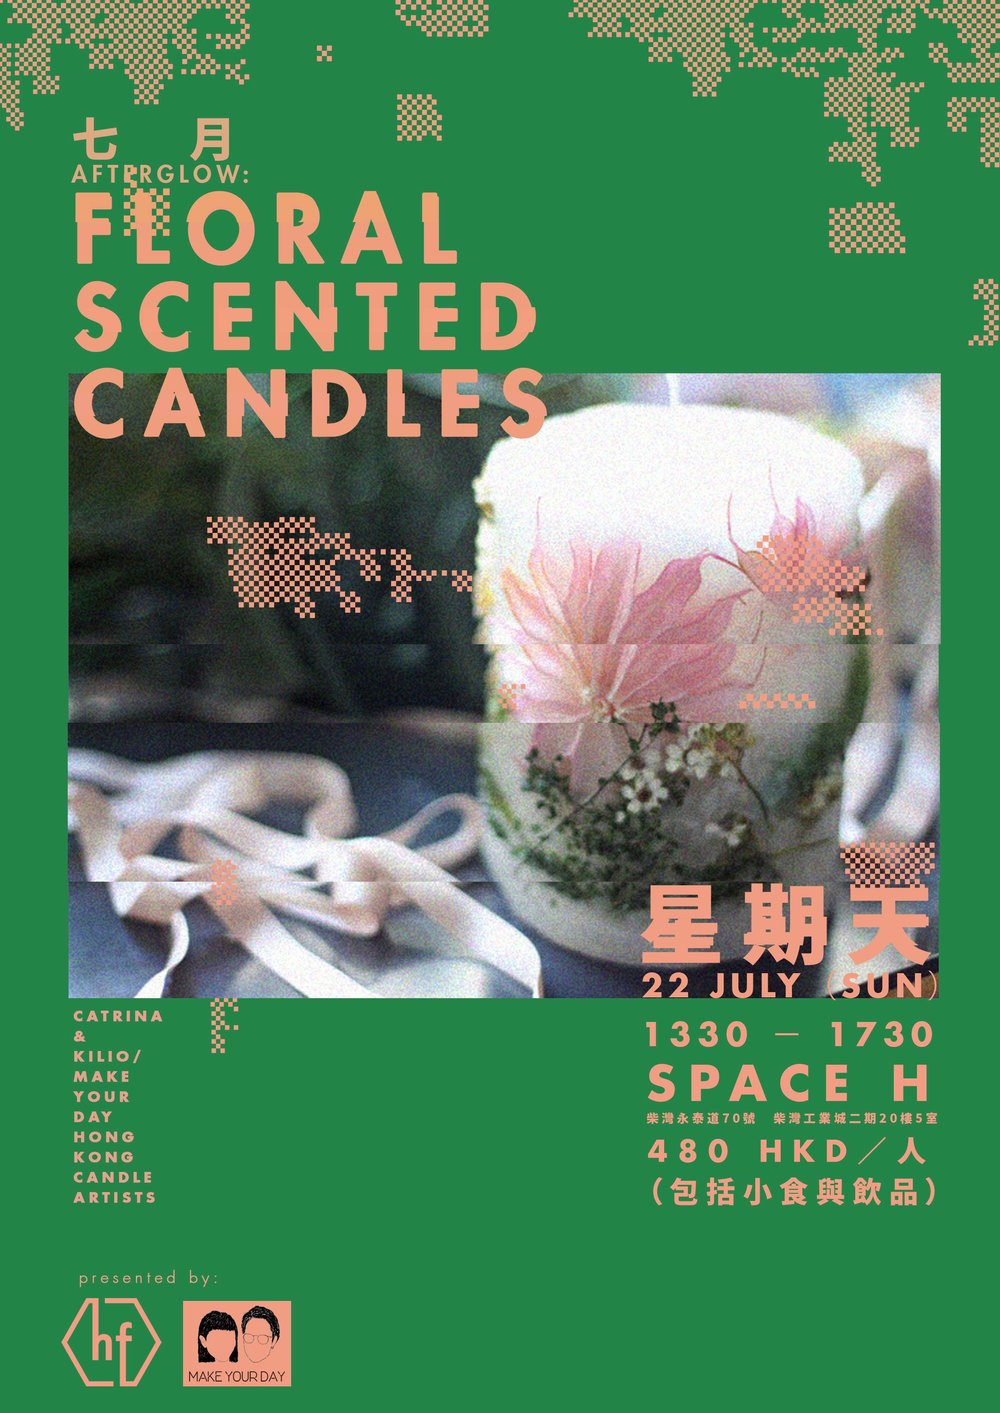 spaceh-floral-scented-candles-poster.jpg